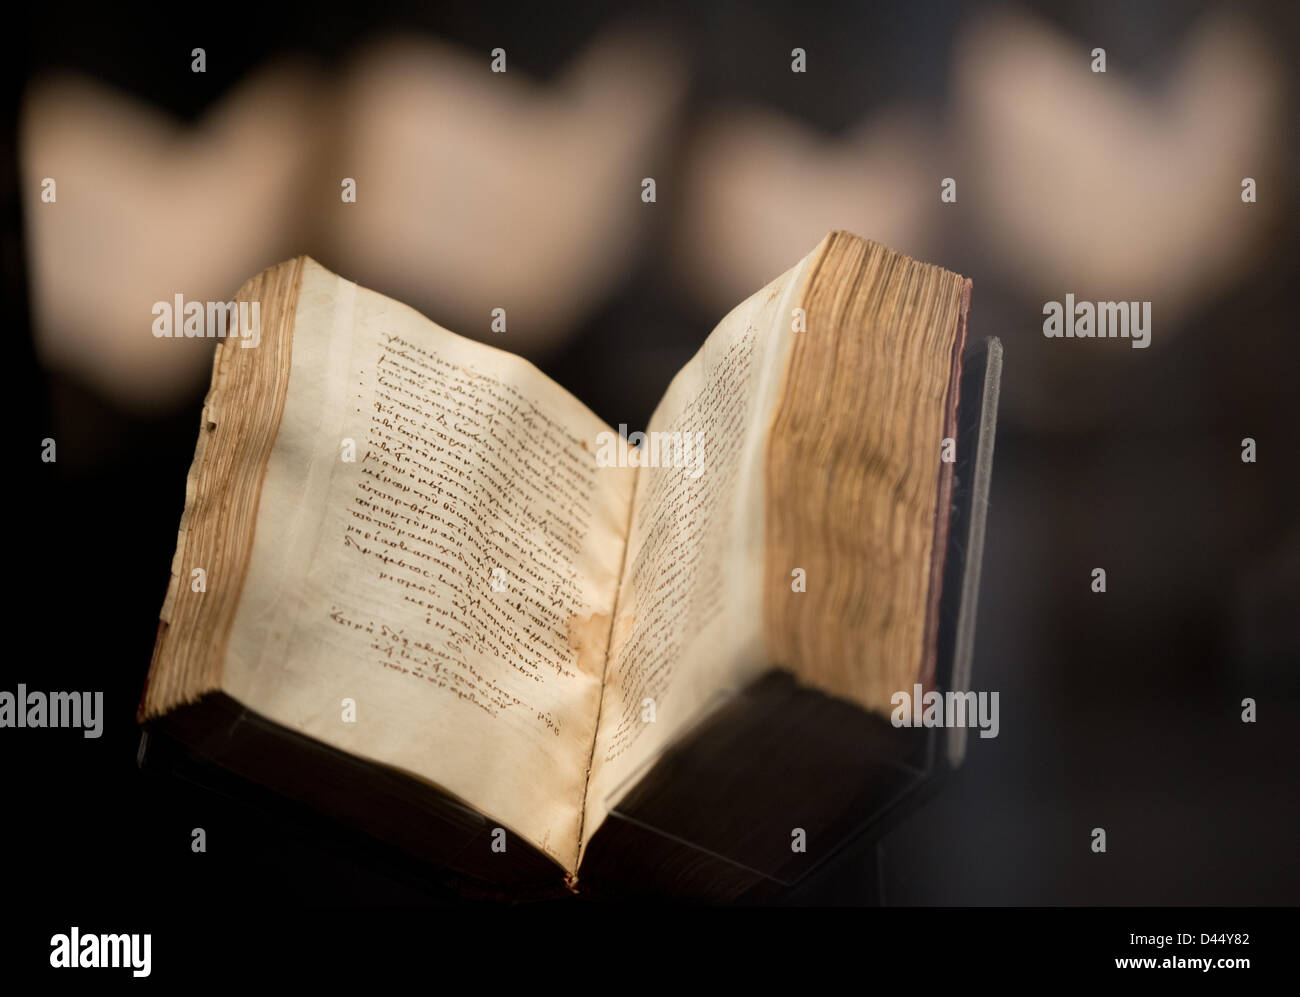 An ancient book containing the sermons of the early Christian theologist Origenes in Greek language is on display - Stock Image